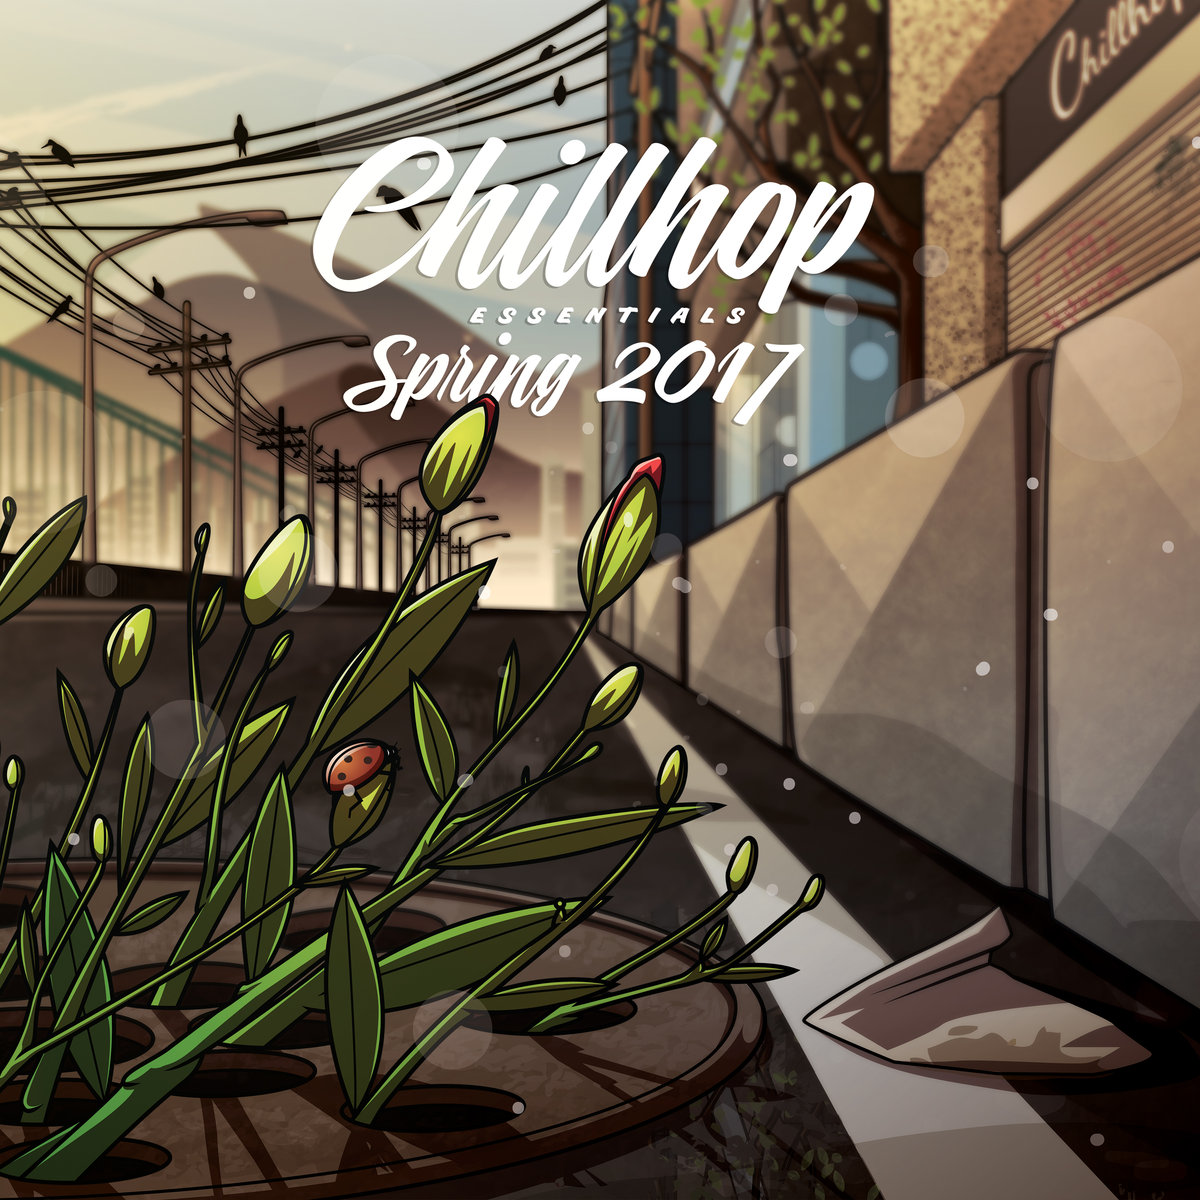 Chillhop Essentials - Spring 2017 - free download